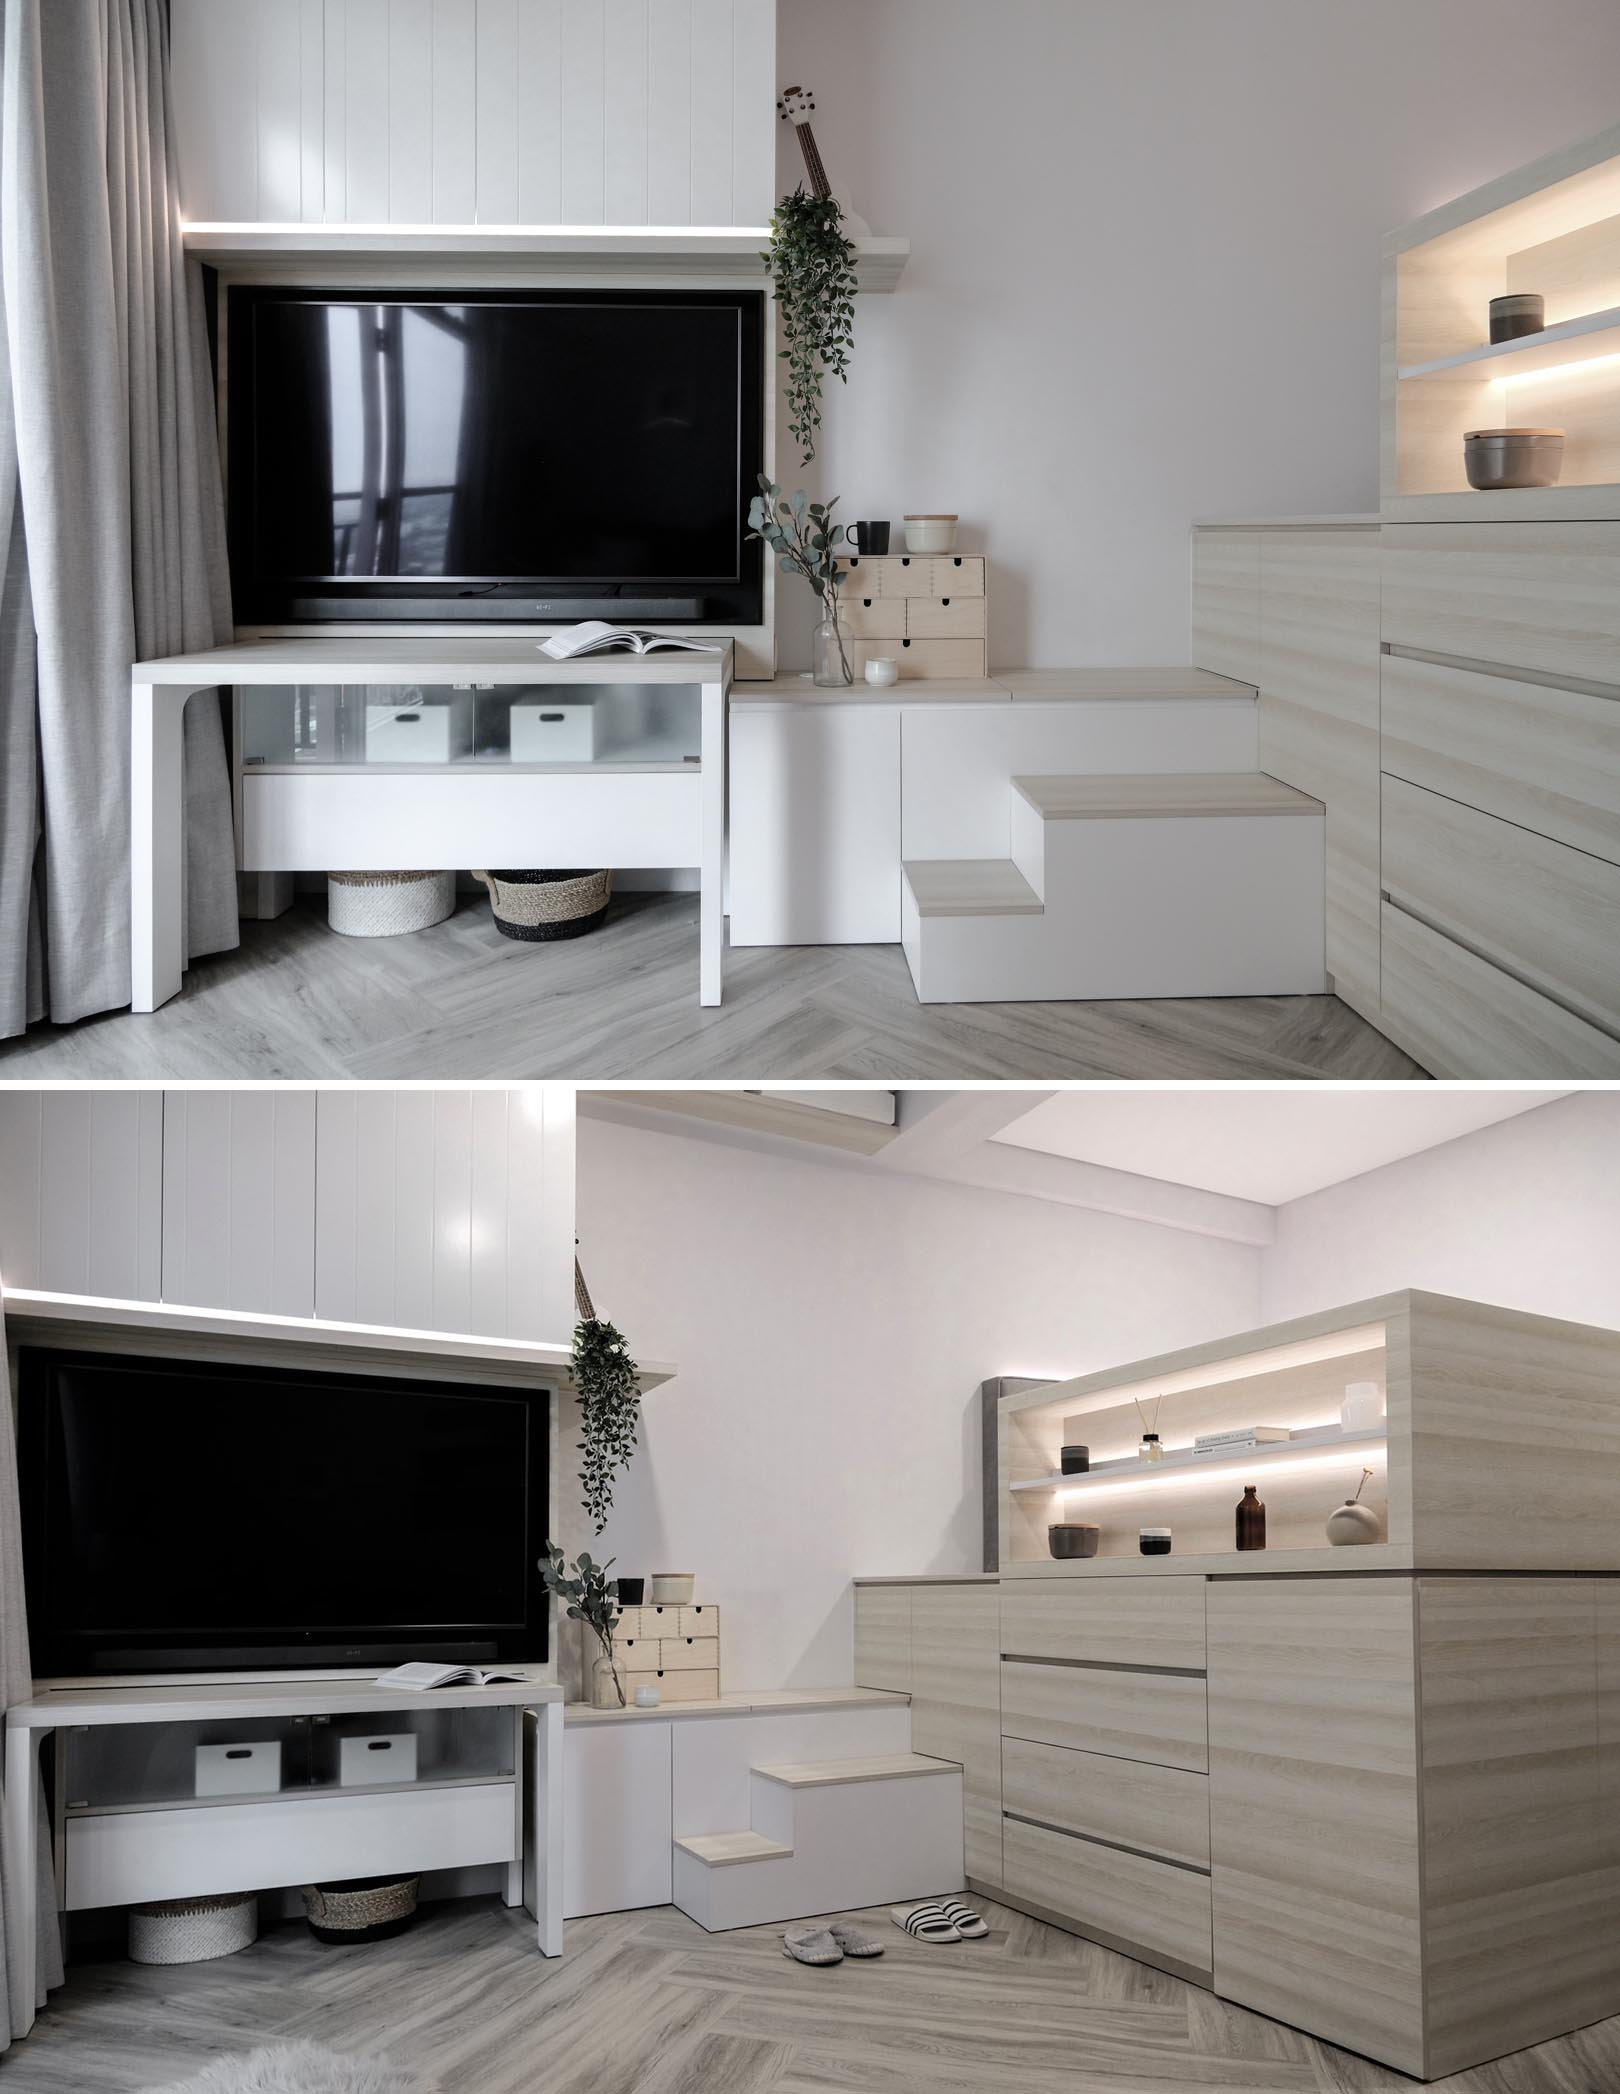 A Loft Bed With Storage Underneath Makes This Small Micro Apartment More Liveable 4